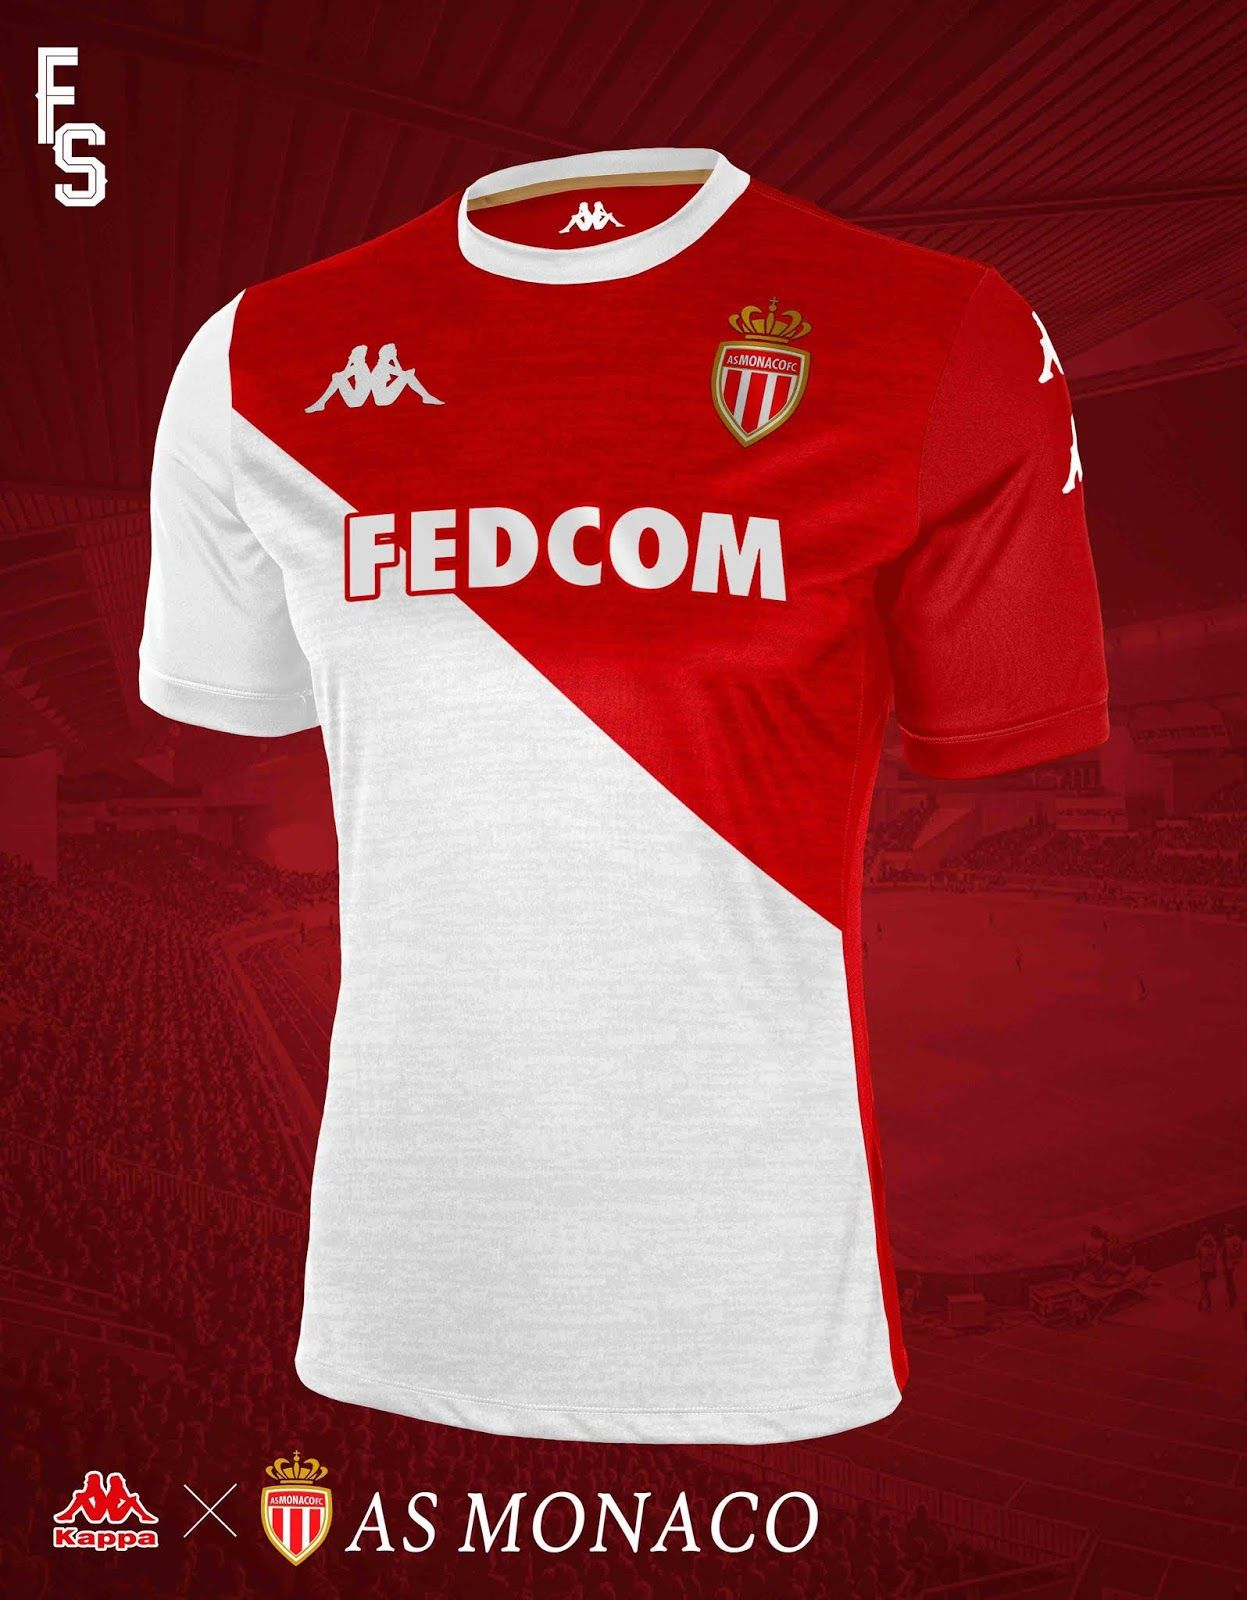 Kappa AS Monaco 19-20 Home   Away Concept Kits - Footy Headlines ... fa989638f7a